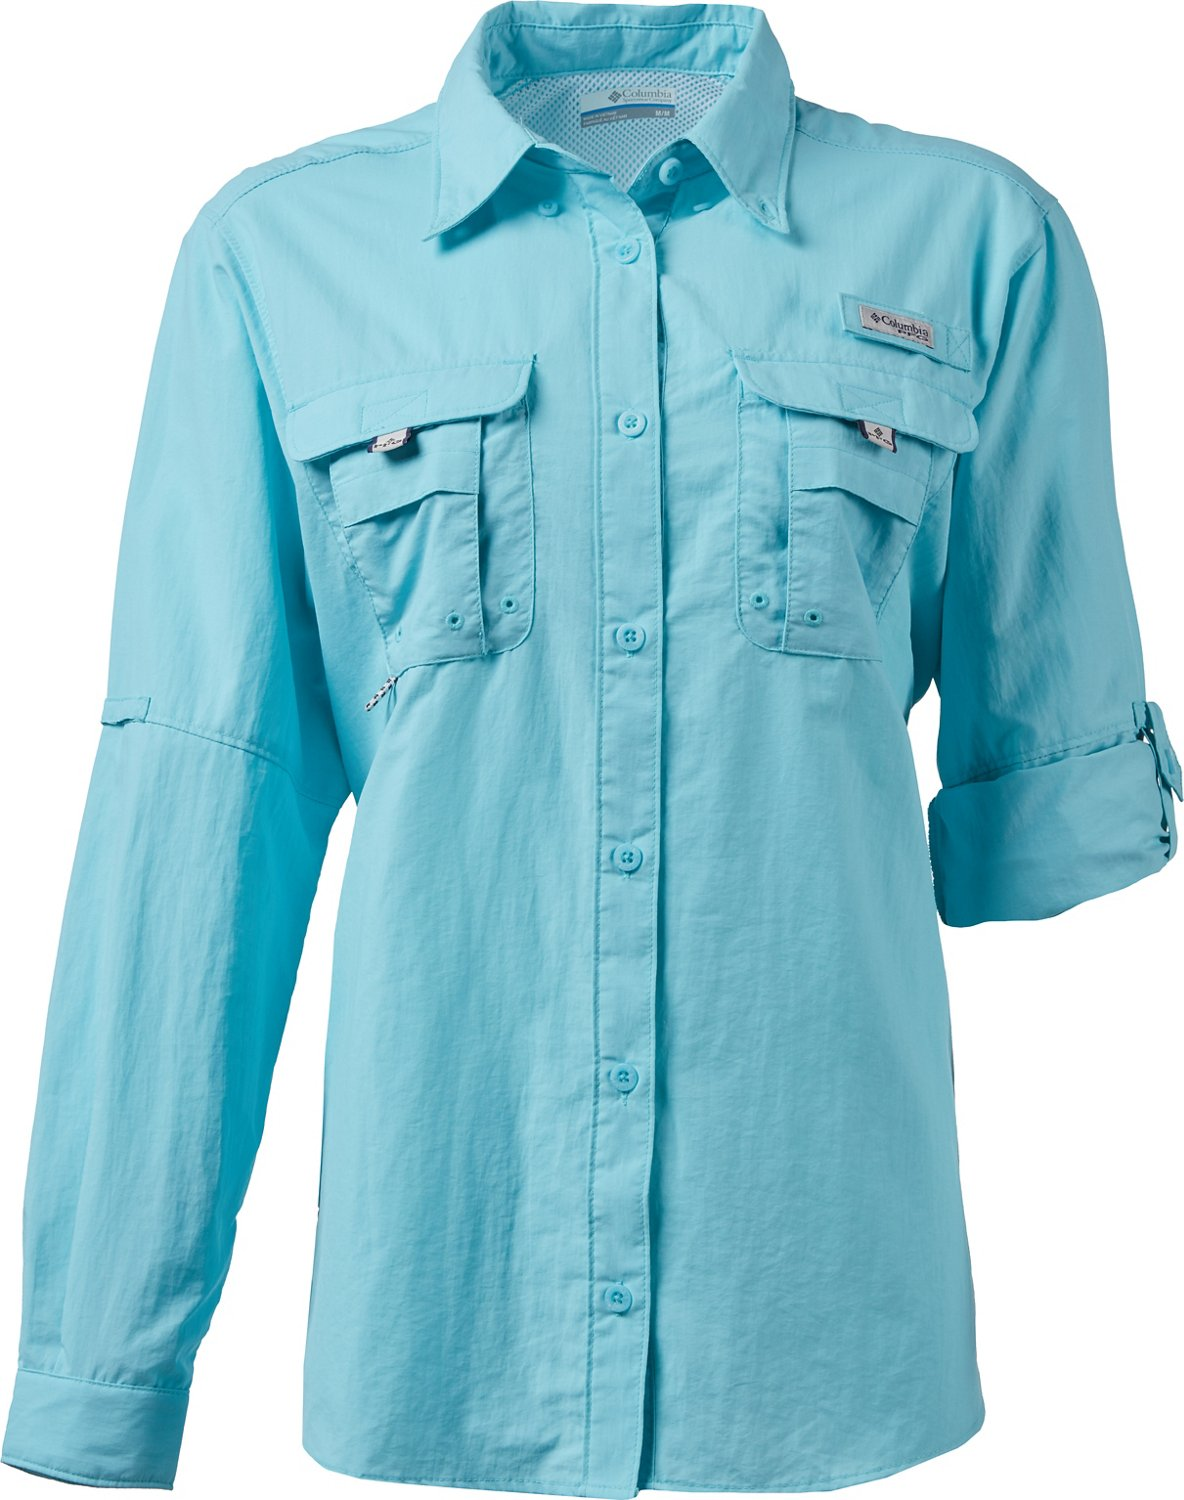 2285e38c Display product reviews for Columbia Sportswear Women's Bahama Long Sleeve  Top